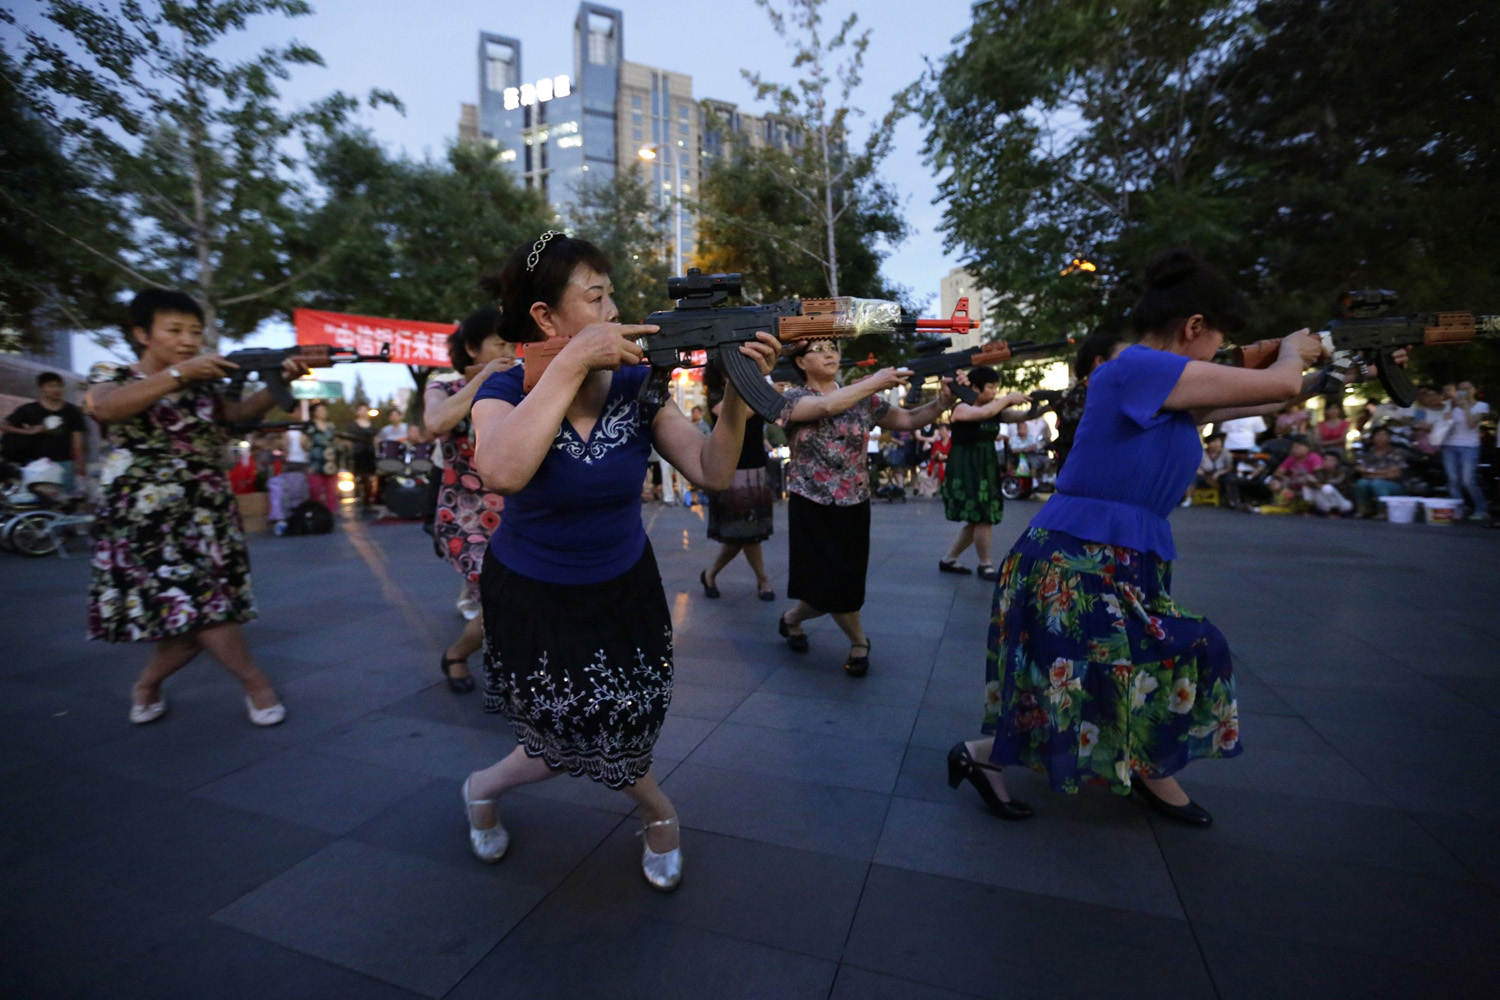 Jun. 27, 2014. Chinese women holding toy guns dance to a revolutionary song as part of their daily exercise at a square outside a shopping mall in Beijing.